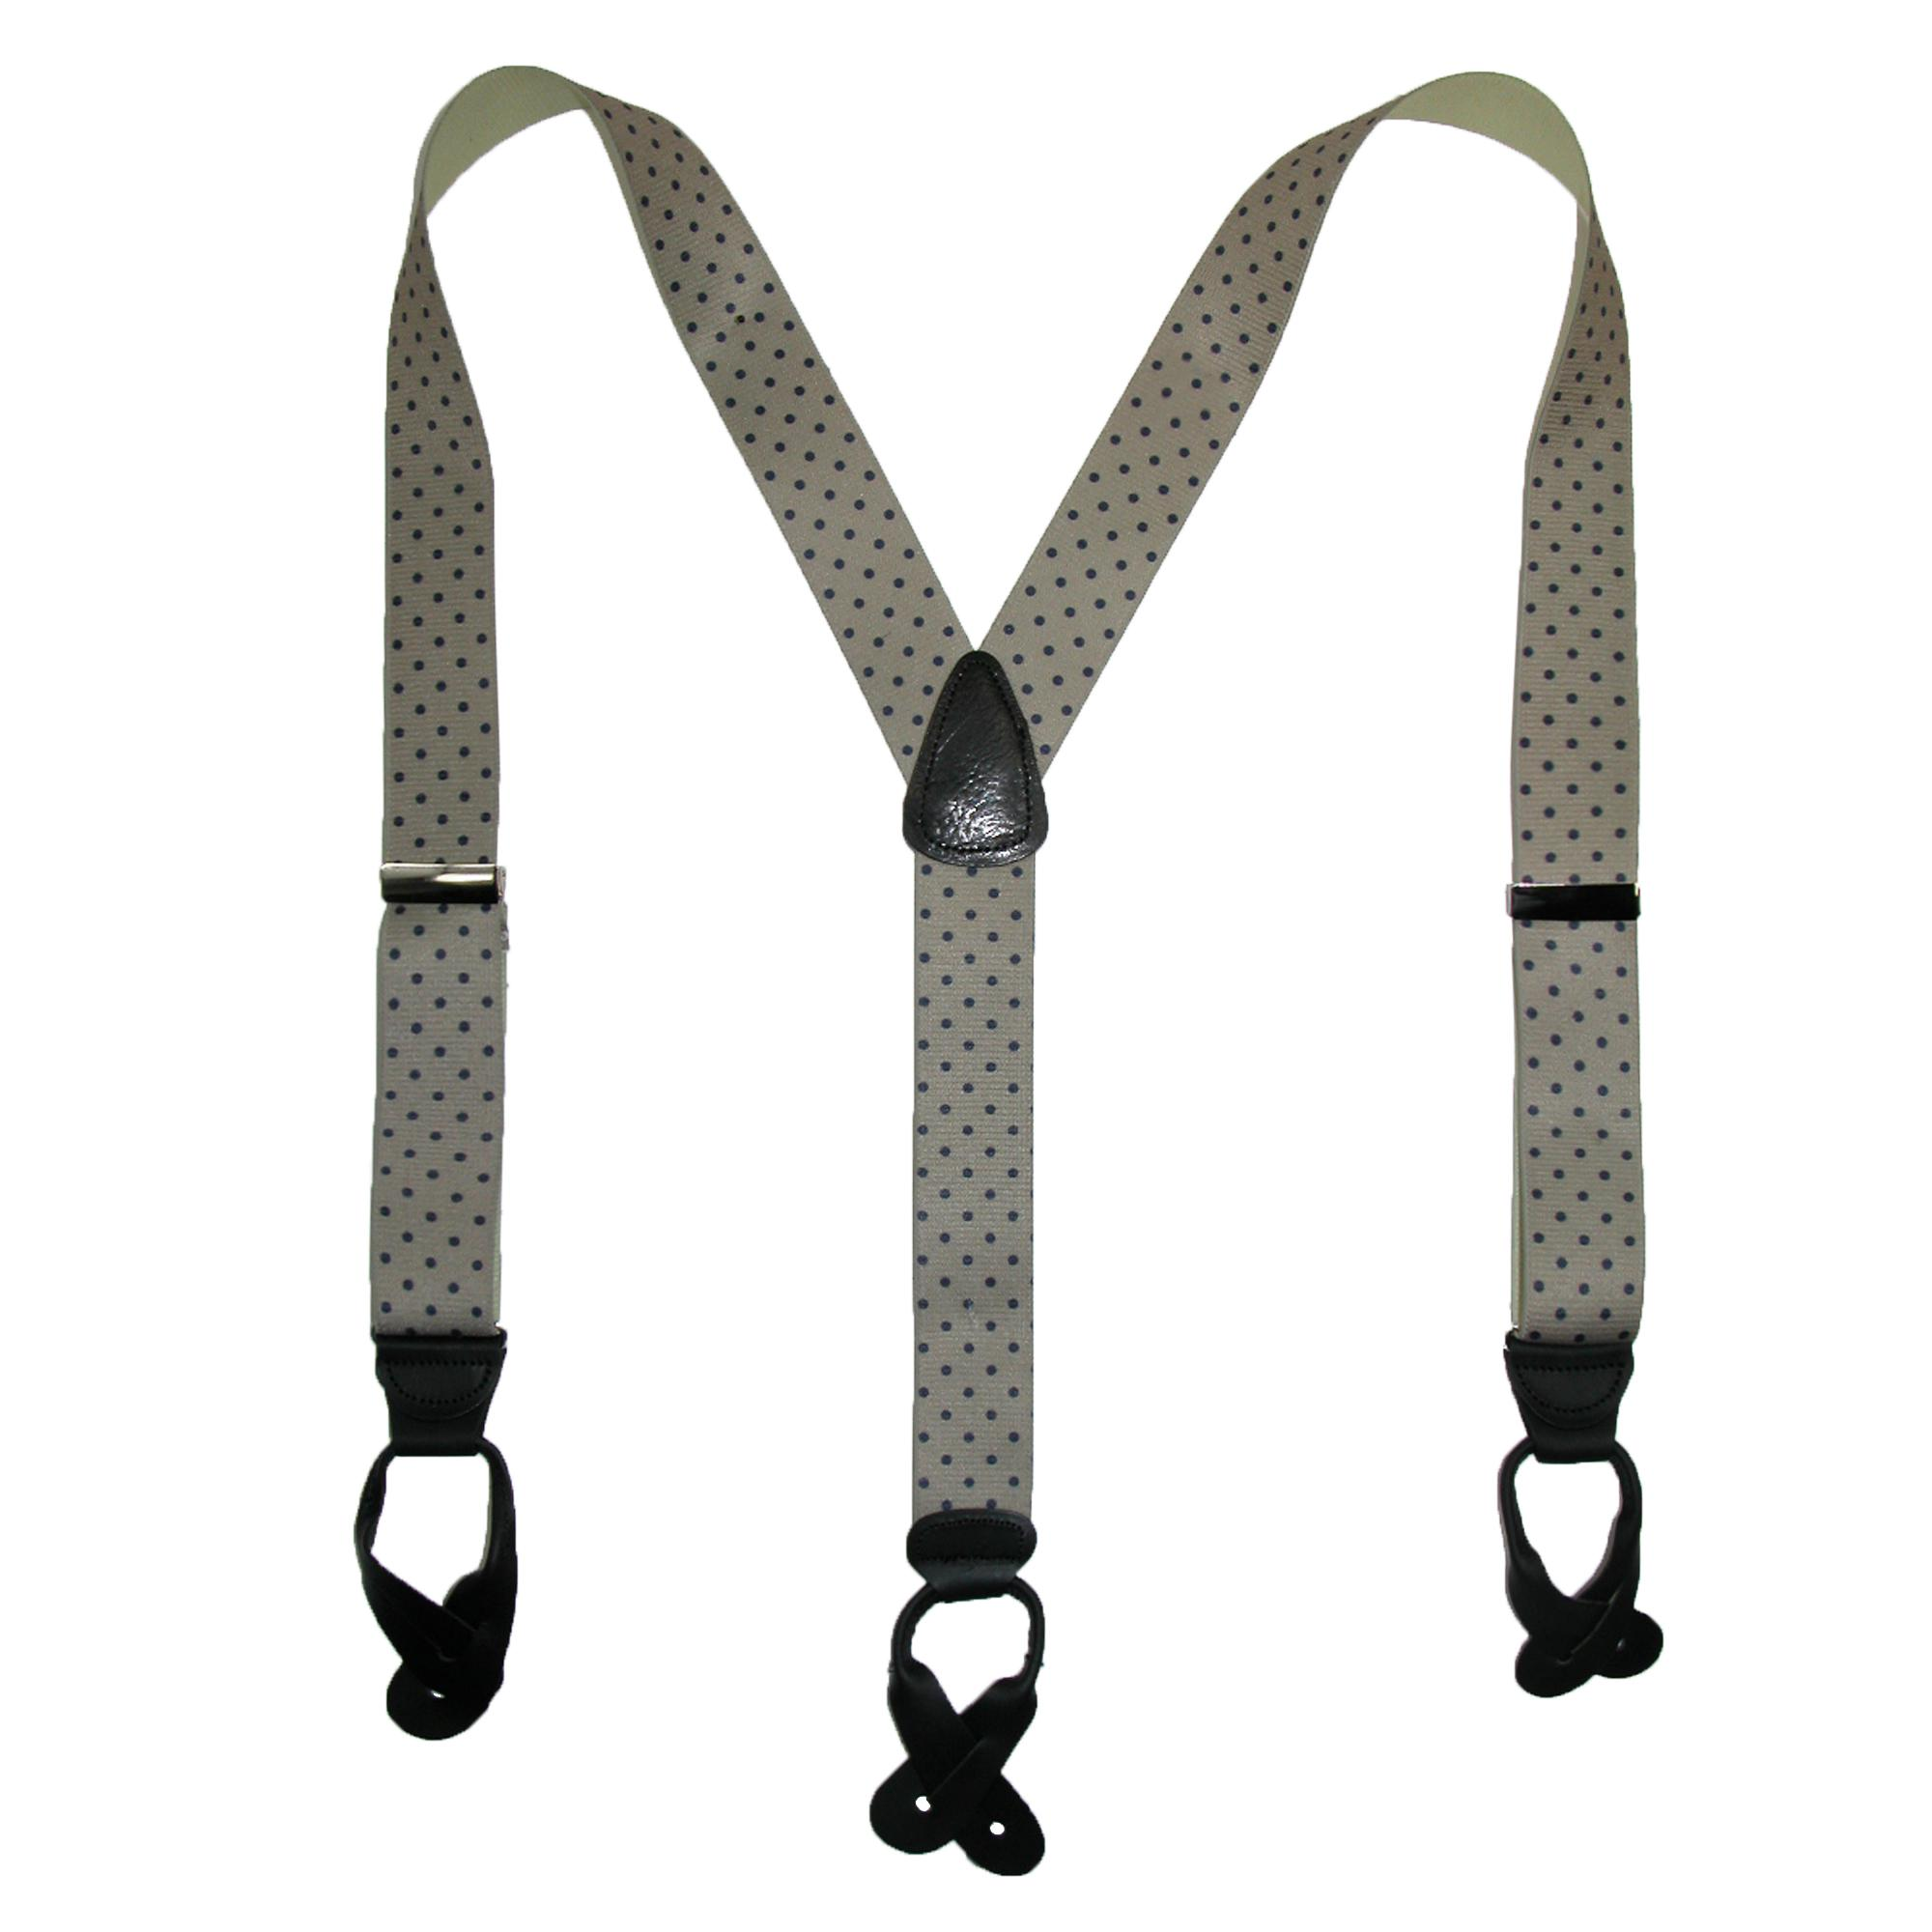 CTM_Men's_Silk_Button-End_1_1_2_Inch_Dots_Suspenders_-_Khaki_with_Navy